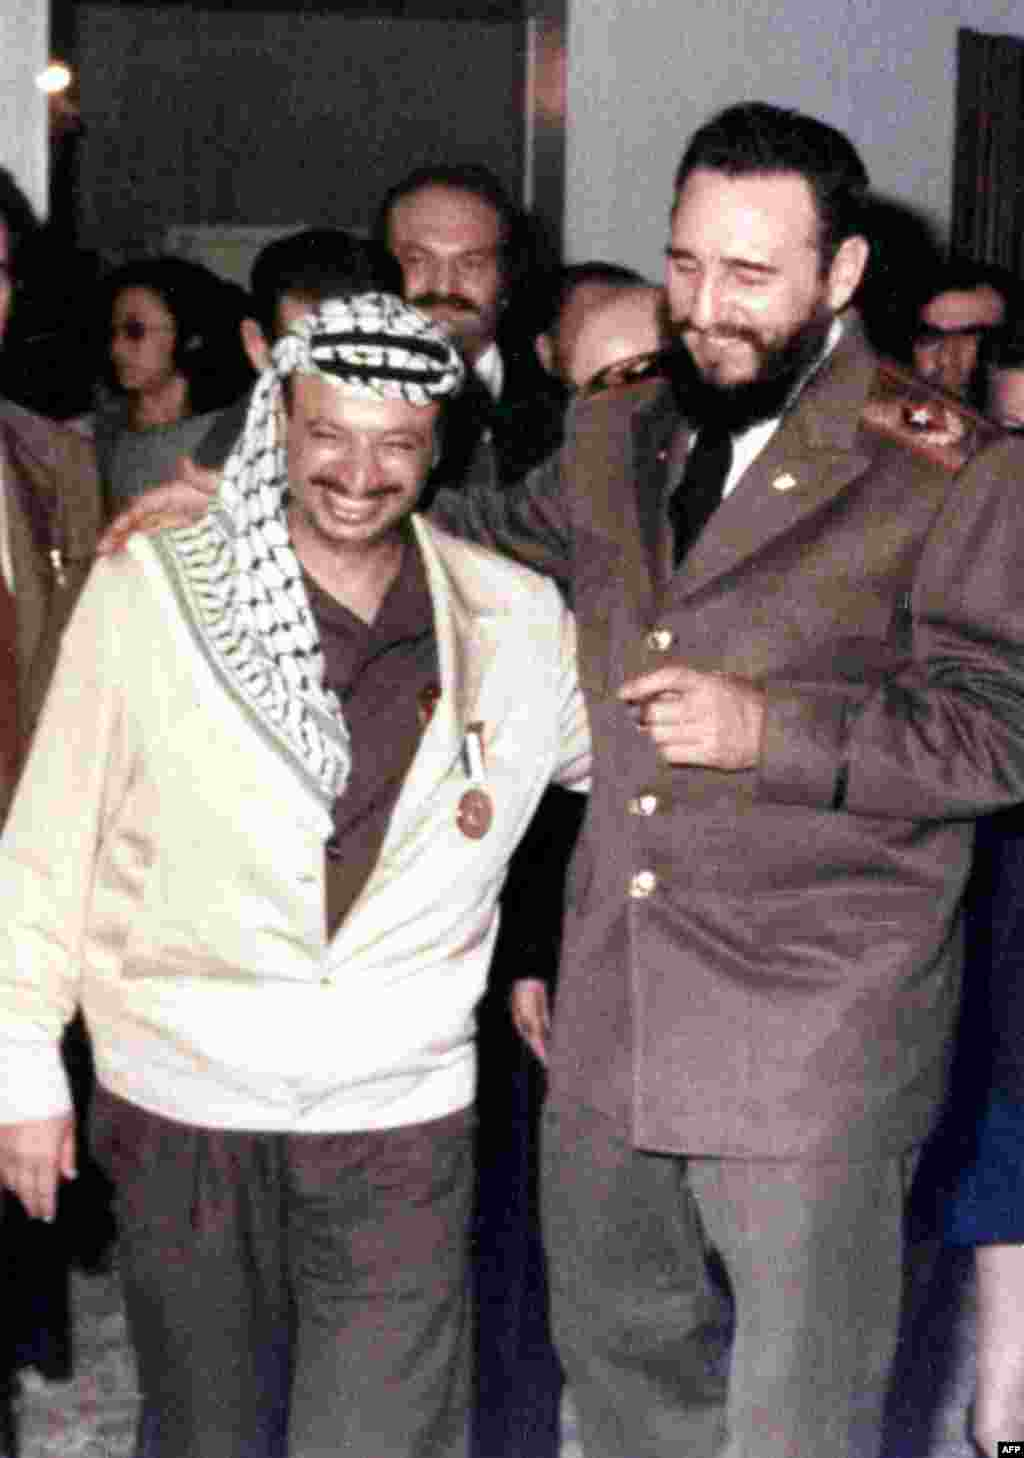 Castro (right) meets with Palestinian leader Yasser Arafat in 1970.